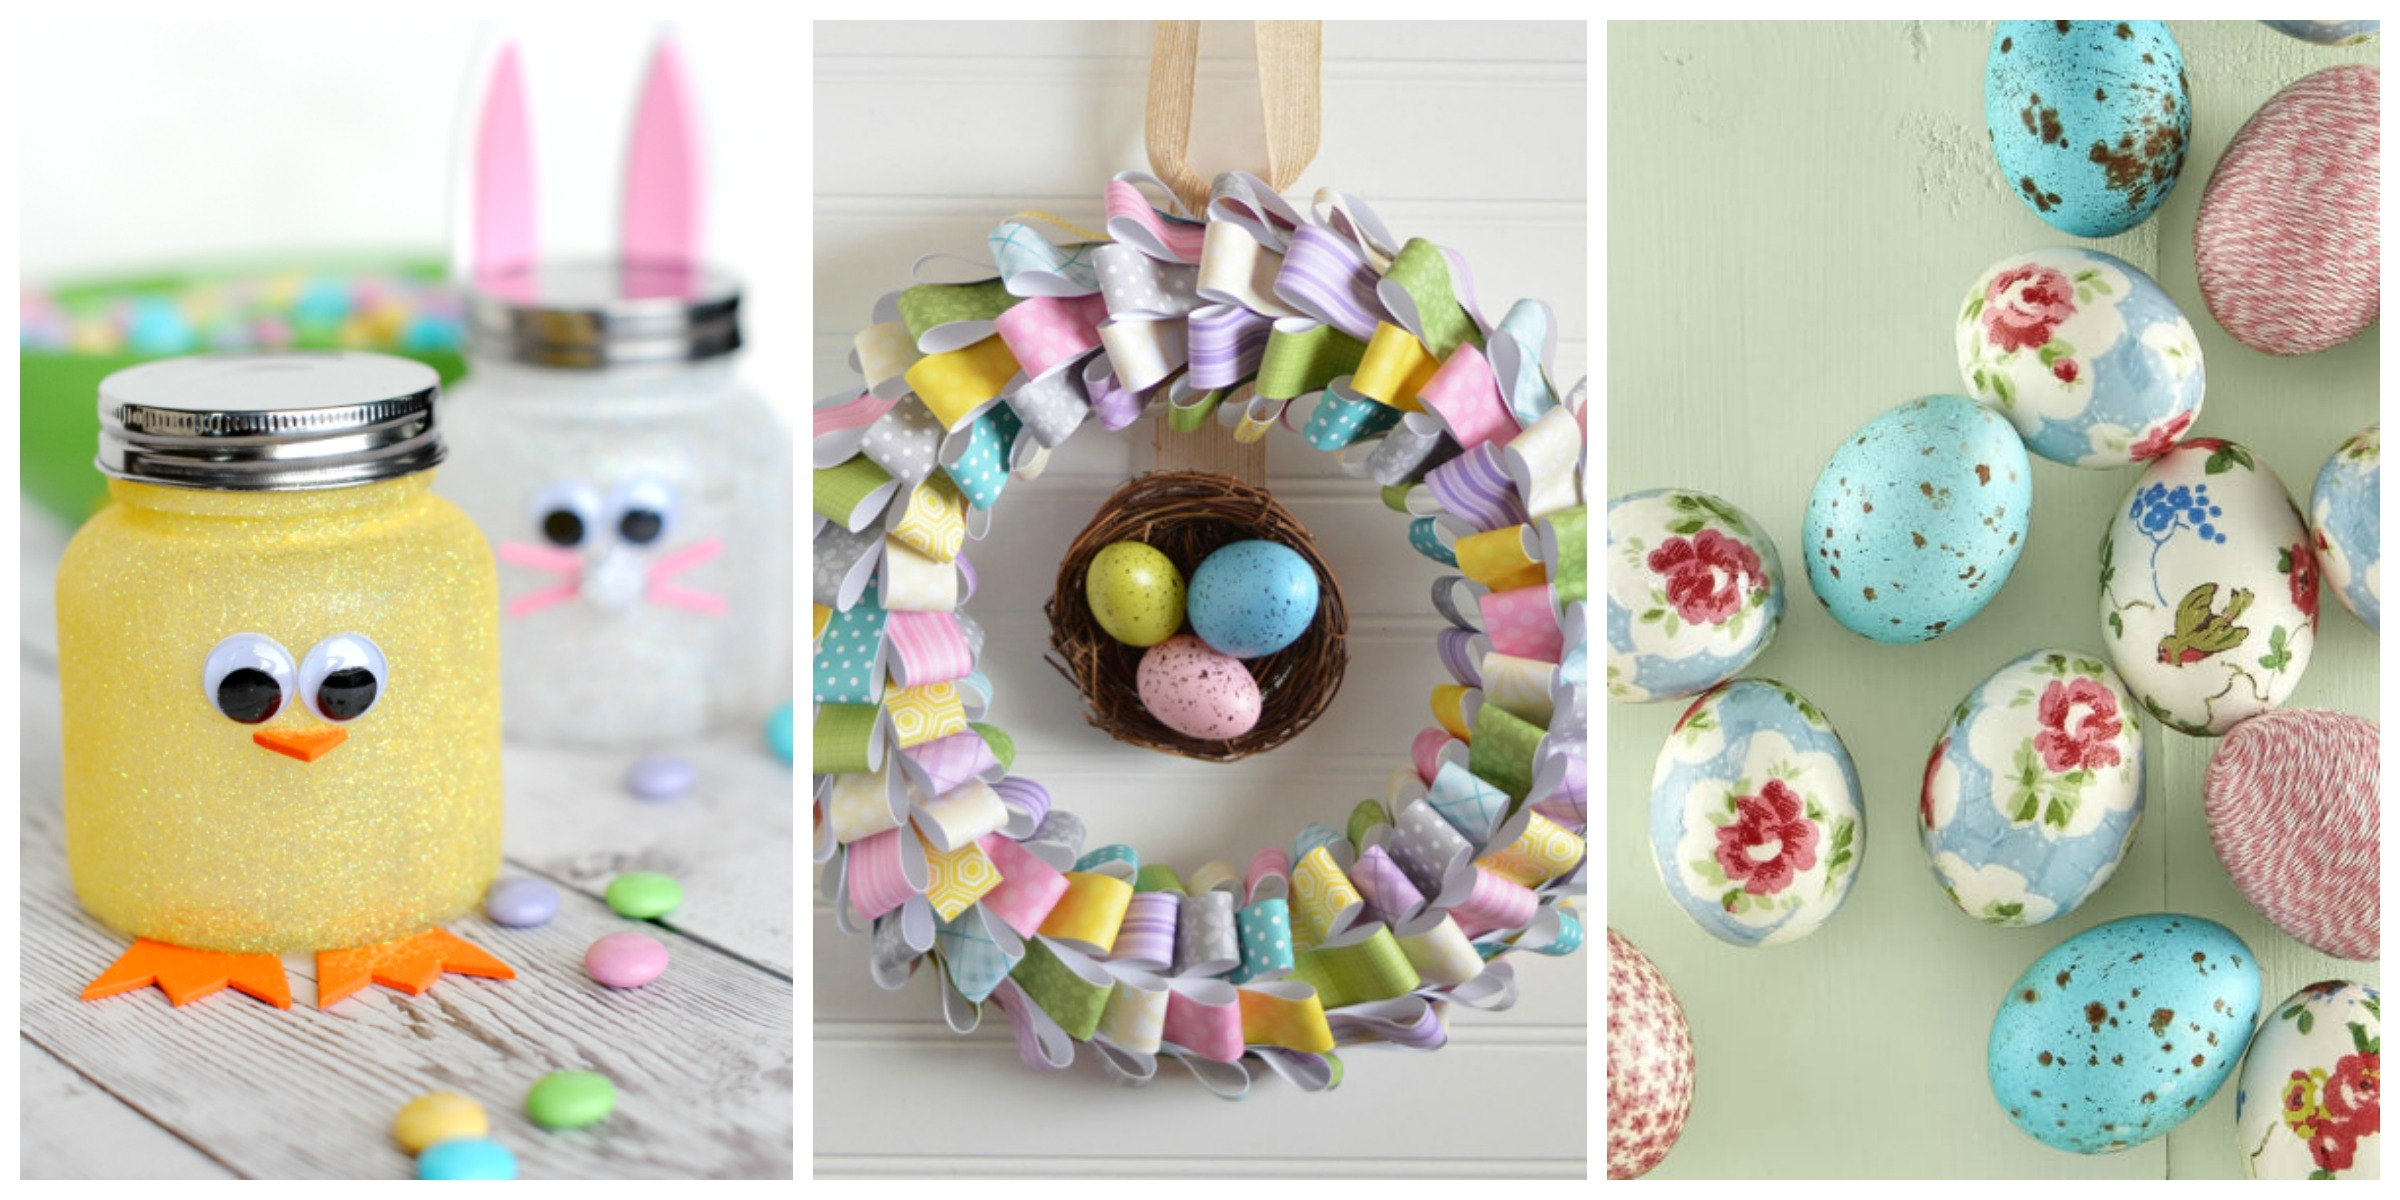 60 easy easter crafts ideas for easter diy decorations for Diy easter decorations home